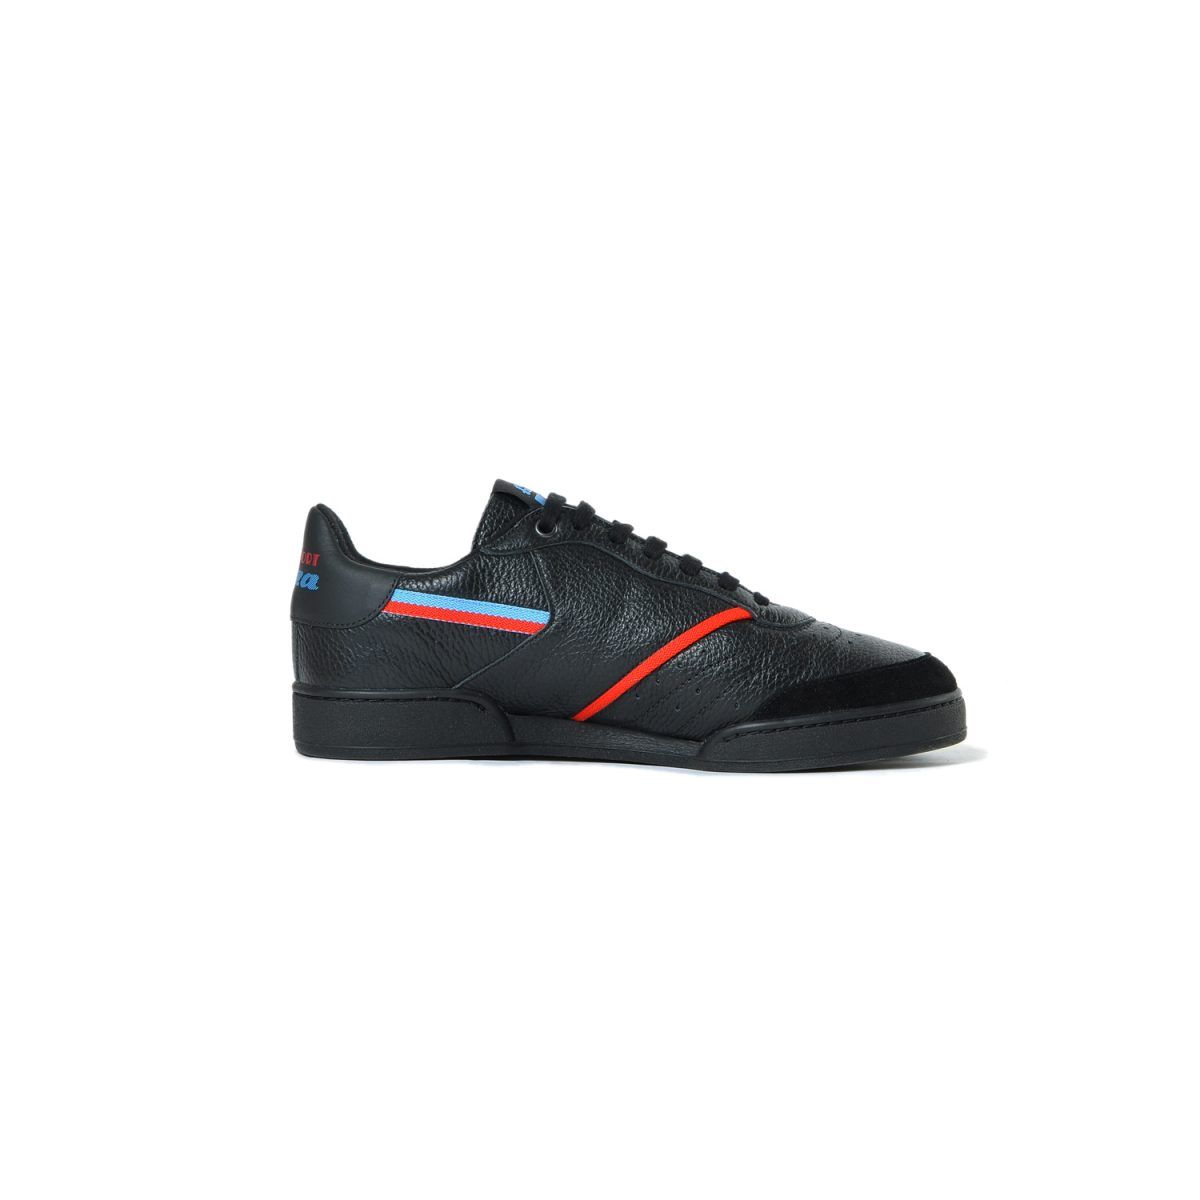 Tisza shoes - Sport - Black-red